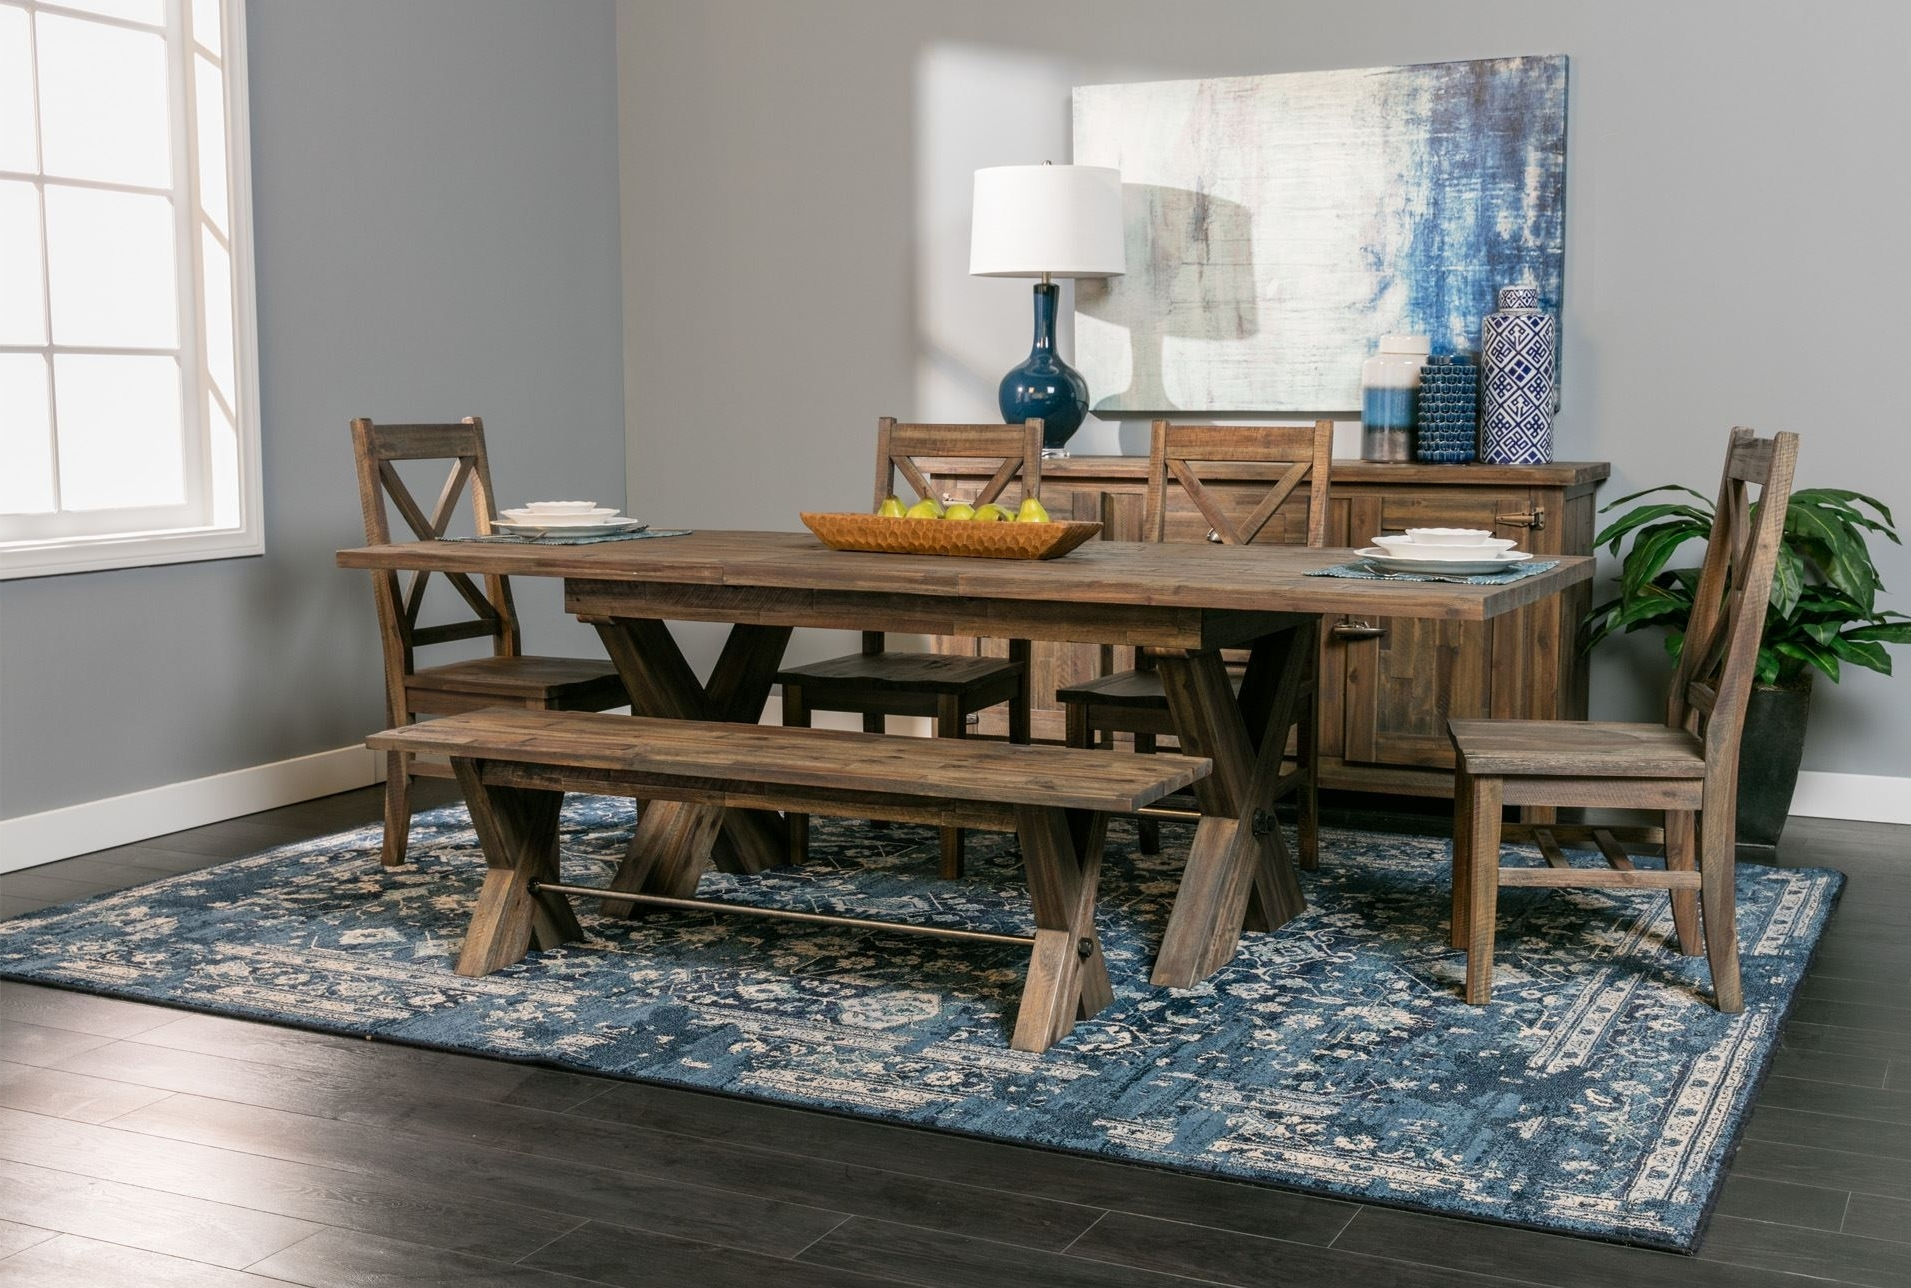 Widely Used Weaver Ii Dining Tables Intended For Weaver Dining Table Household Remodel For Living Spaces Dining (View 16 of 25)